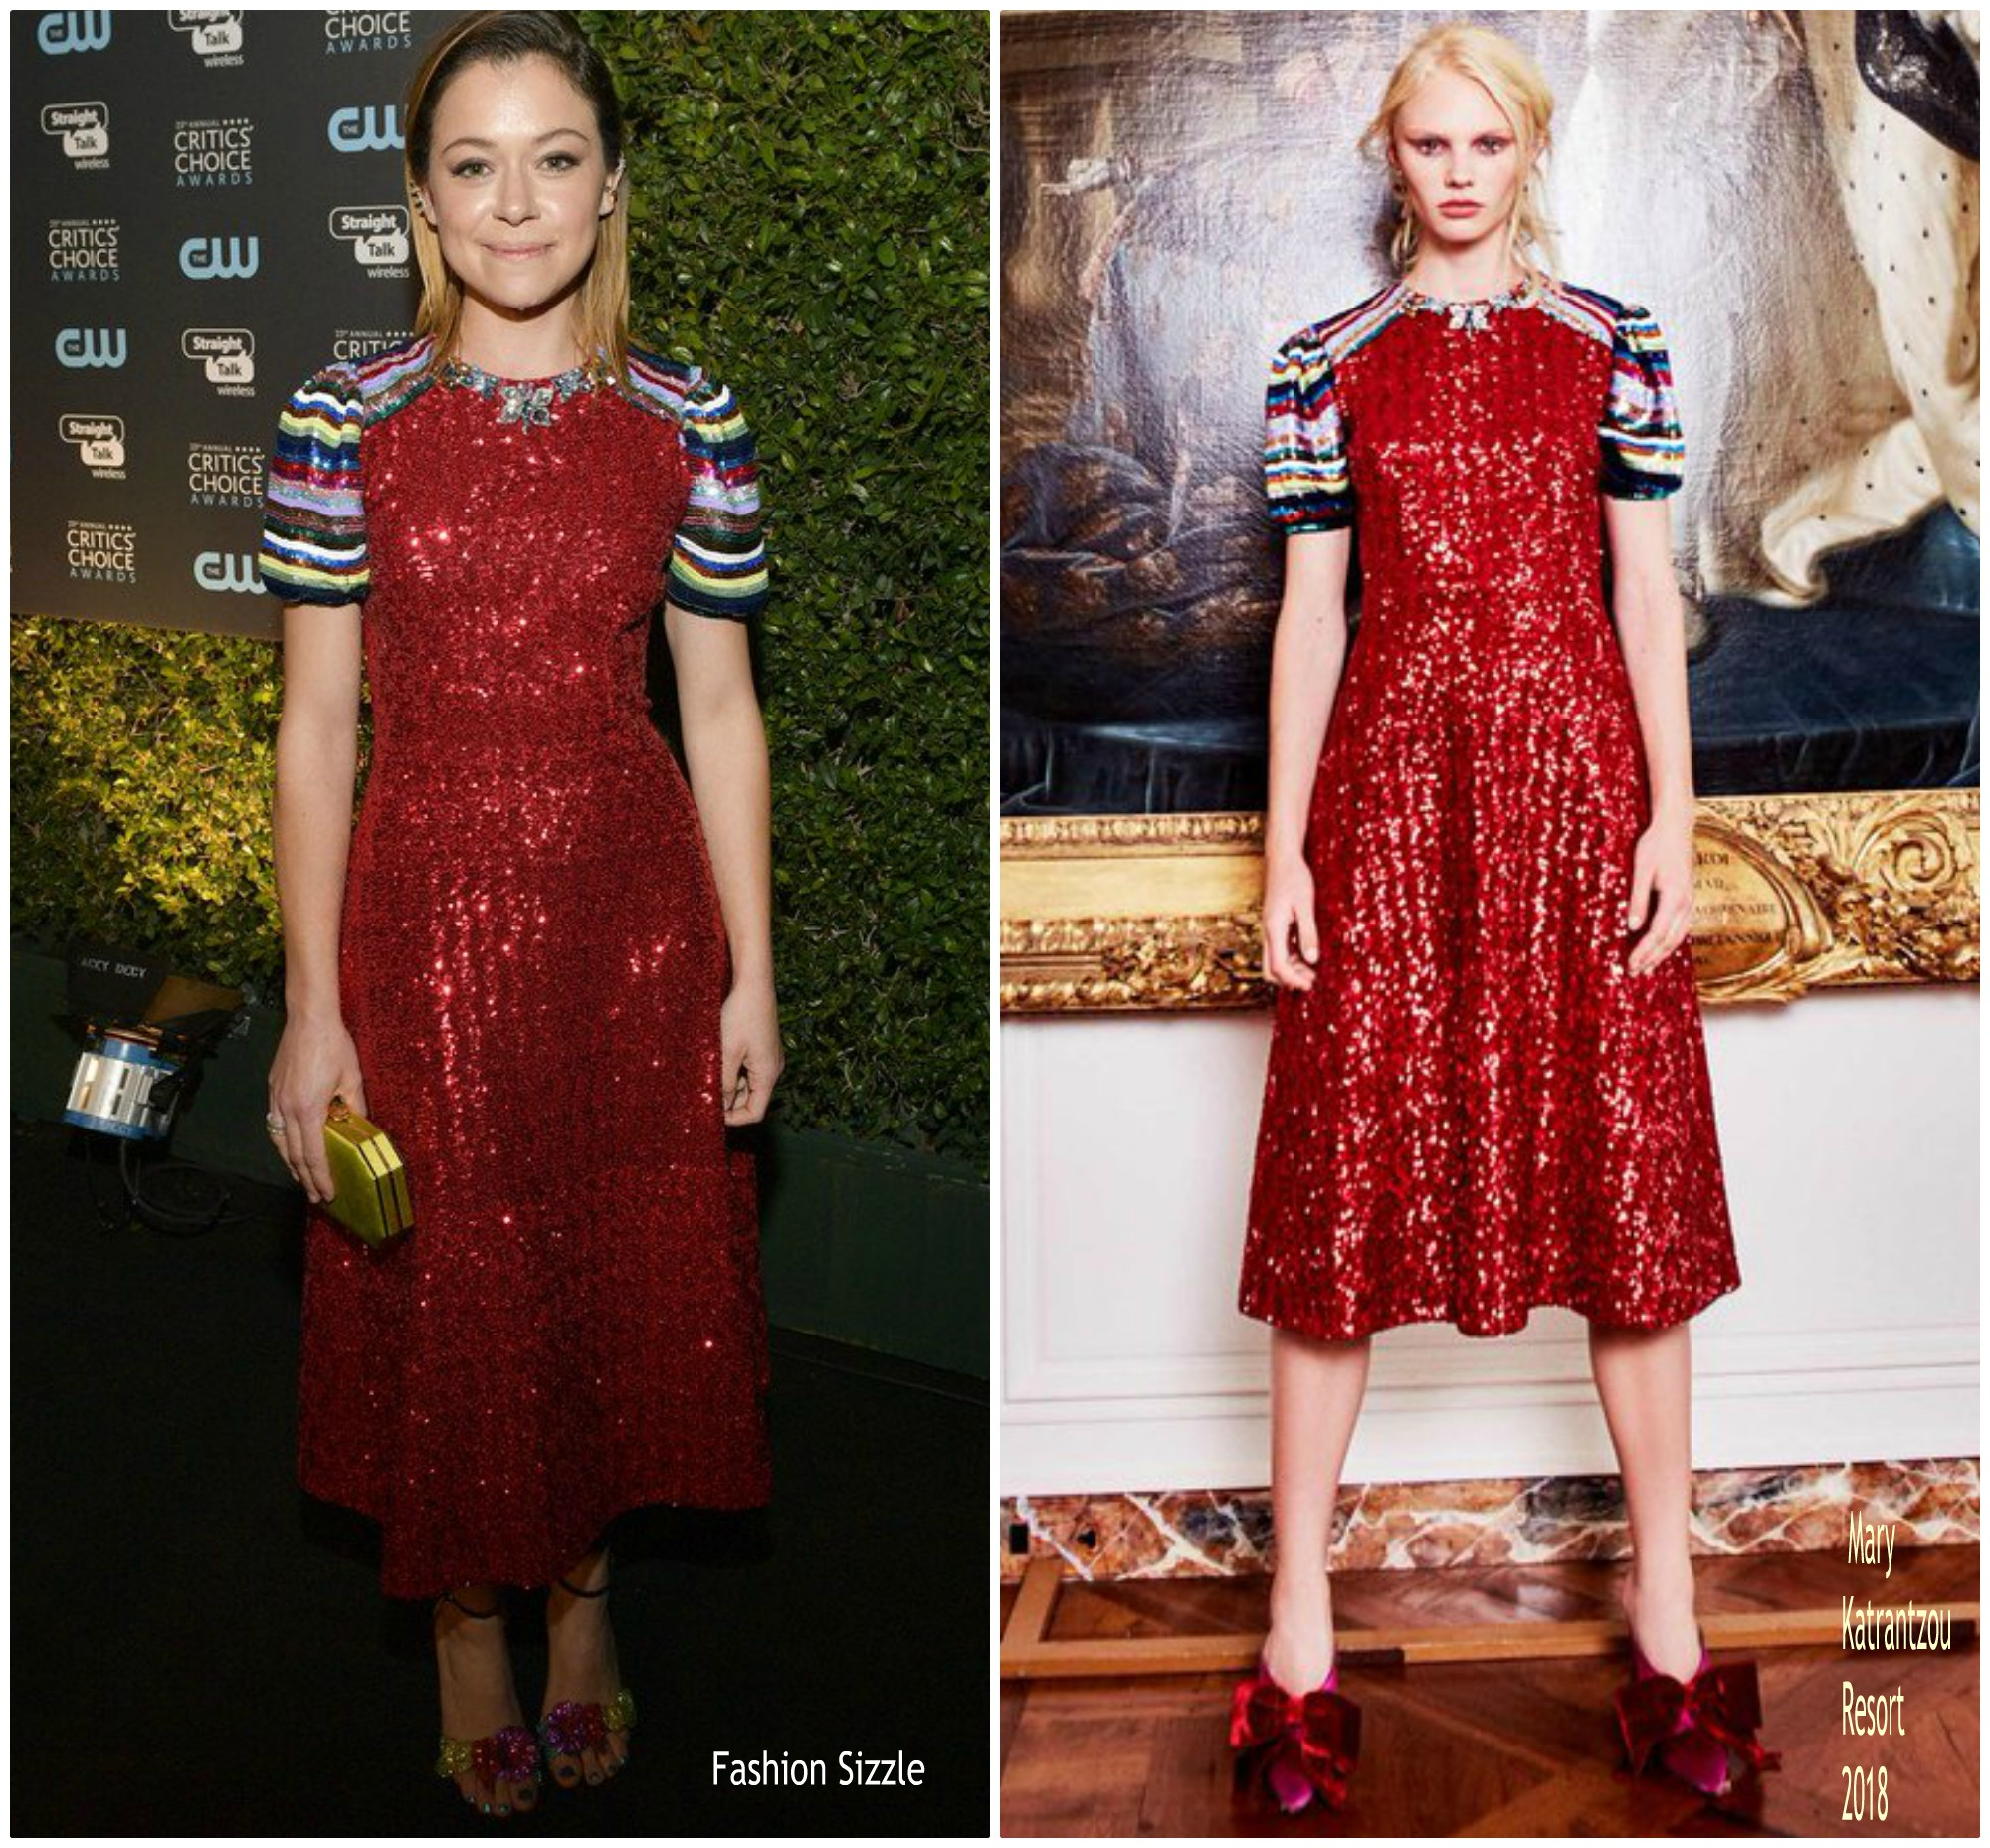 tatiana-maslany-in-mary-katrantzou-2018-critcis-choice-awards-